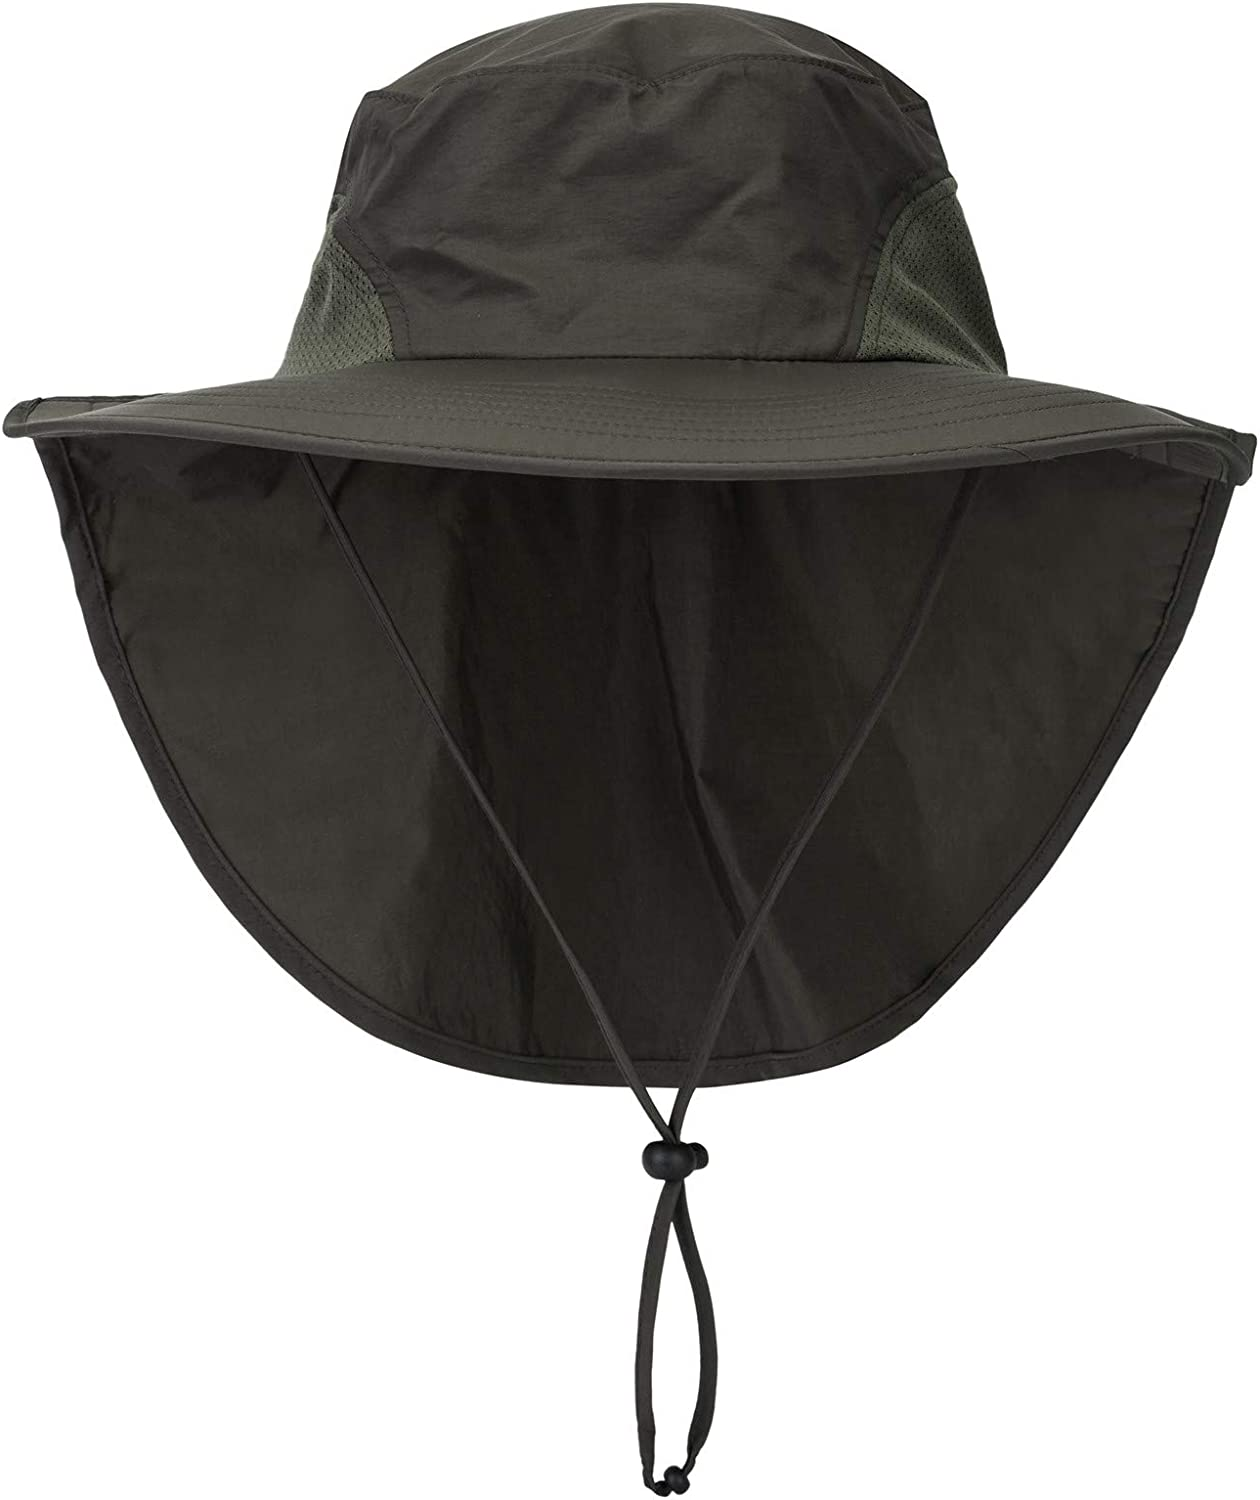 Connectyle Outdoor Large Brim Fishing Hat with Neck Cover UPF 50+ Mesh Sun Hats